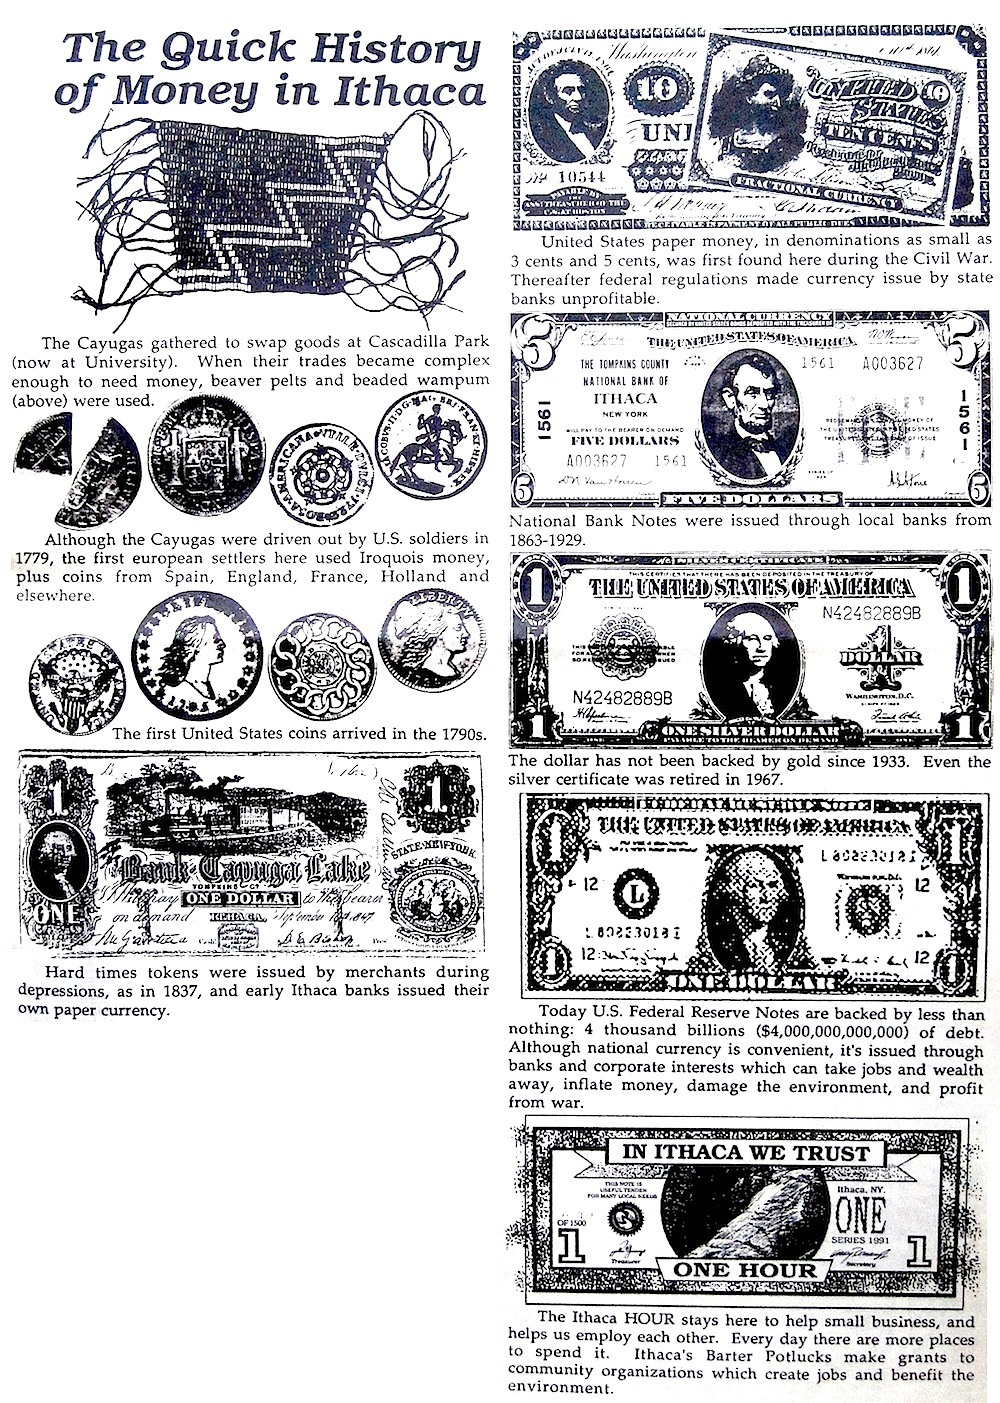 Quick History of Money in Ithaca